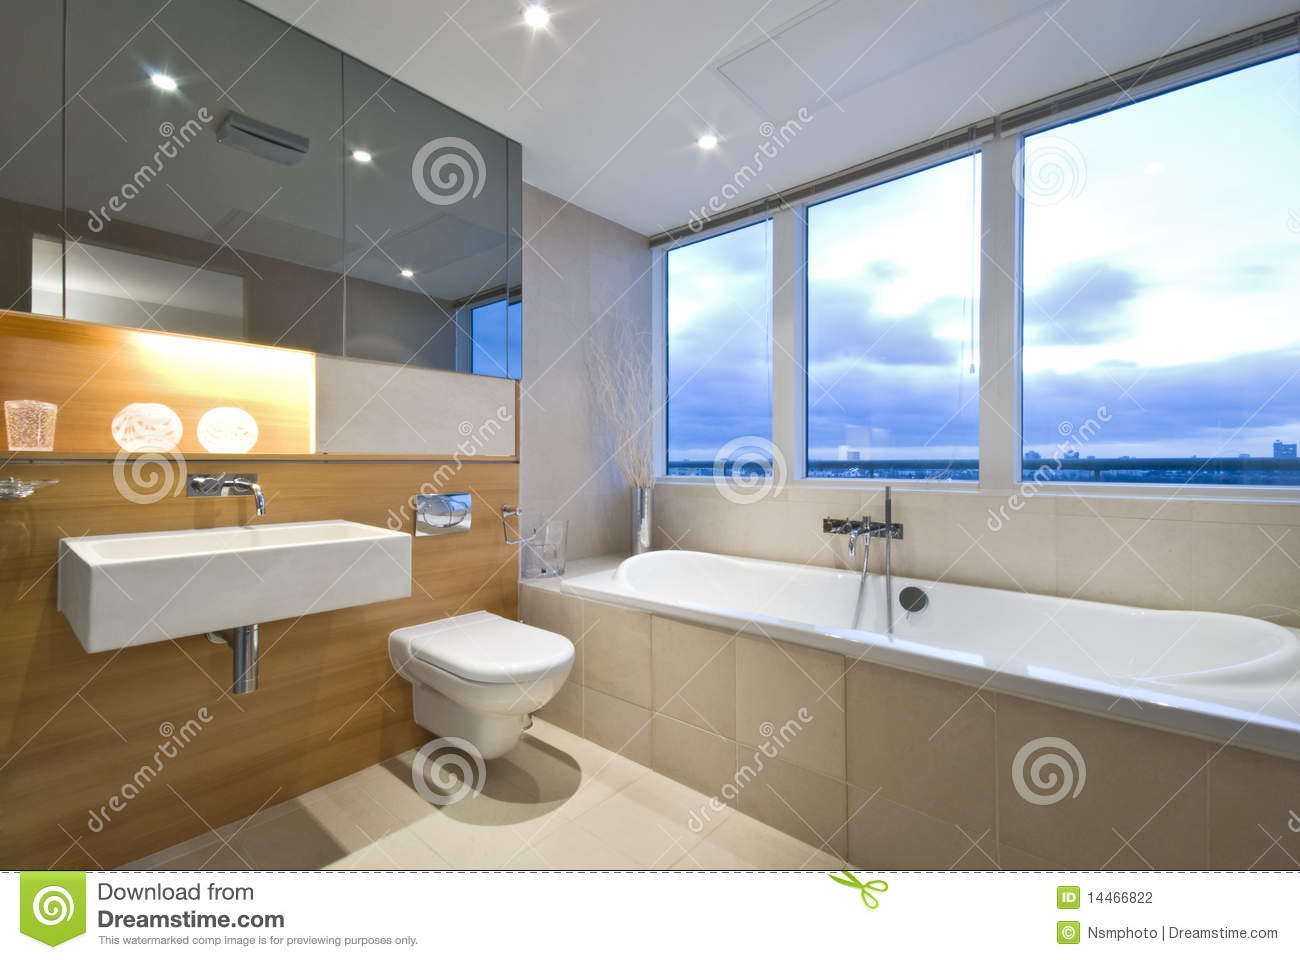 Baño Moderno Con Tina:Modern Bathroom with Large Windows